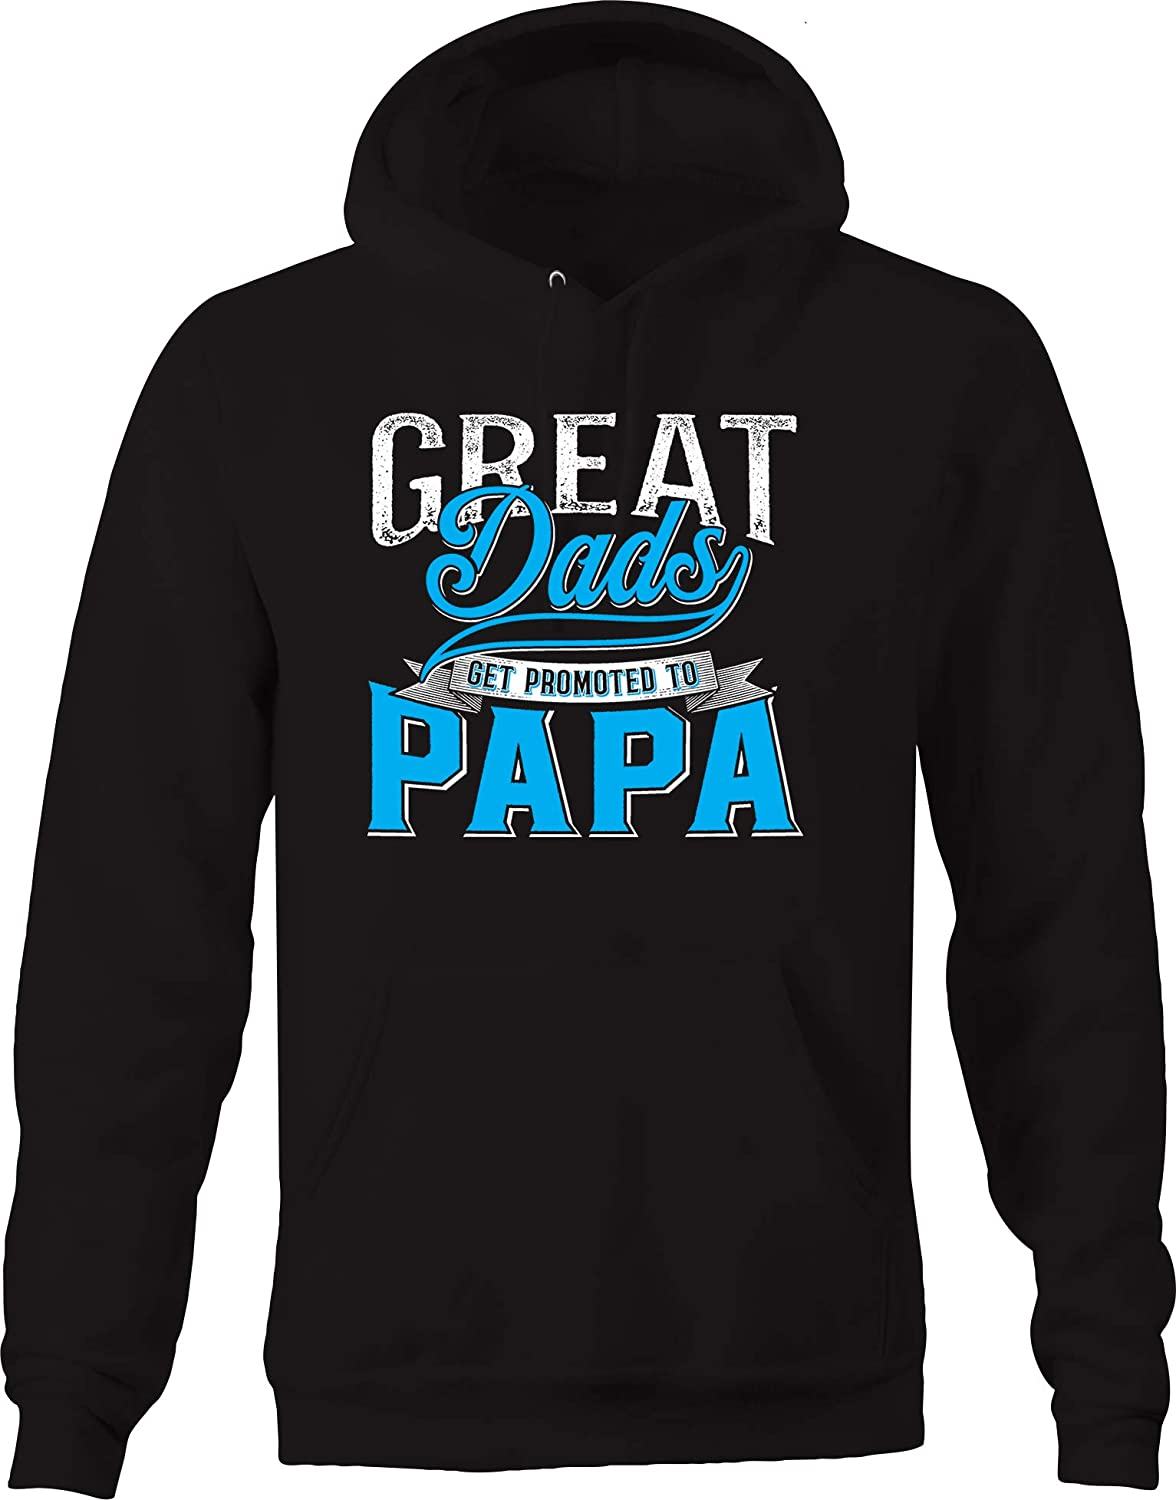 Great Dads Get Promoted to Papa Family Love Compassion Fun Joy Hoodies for Men